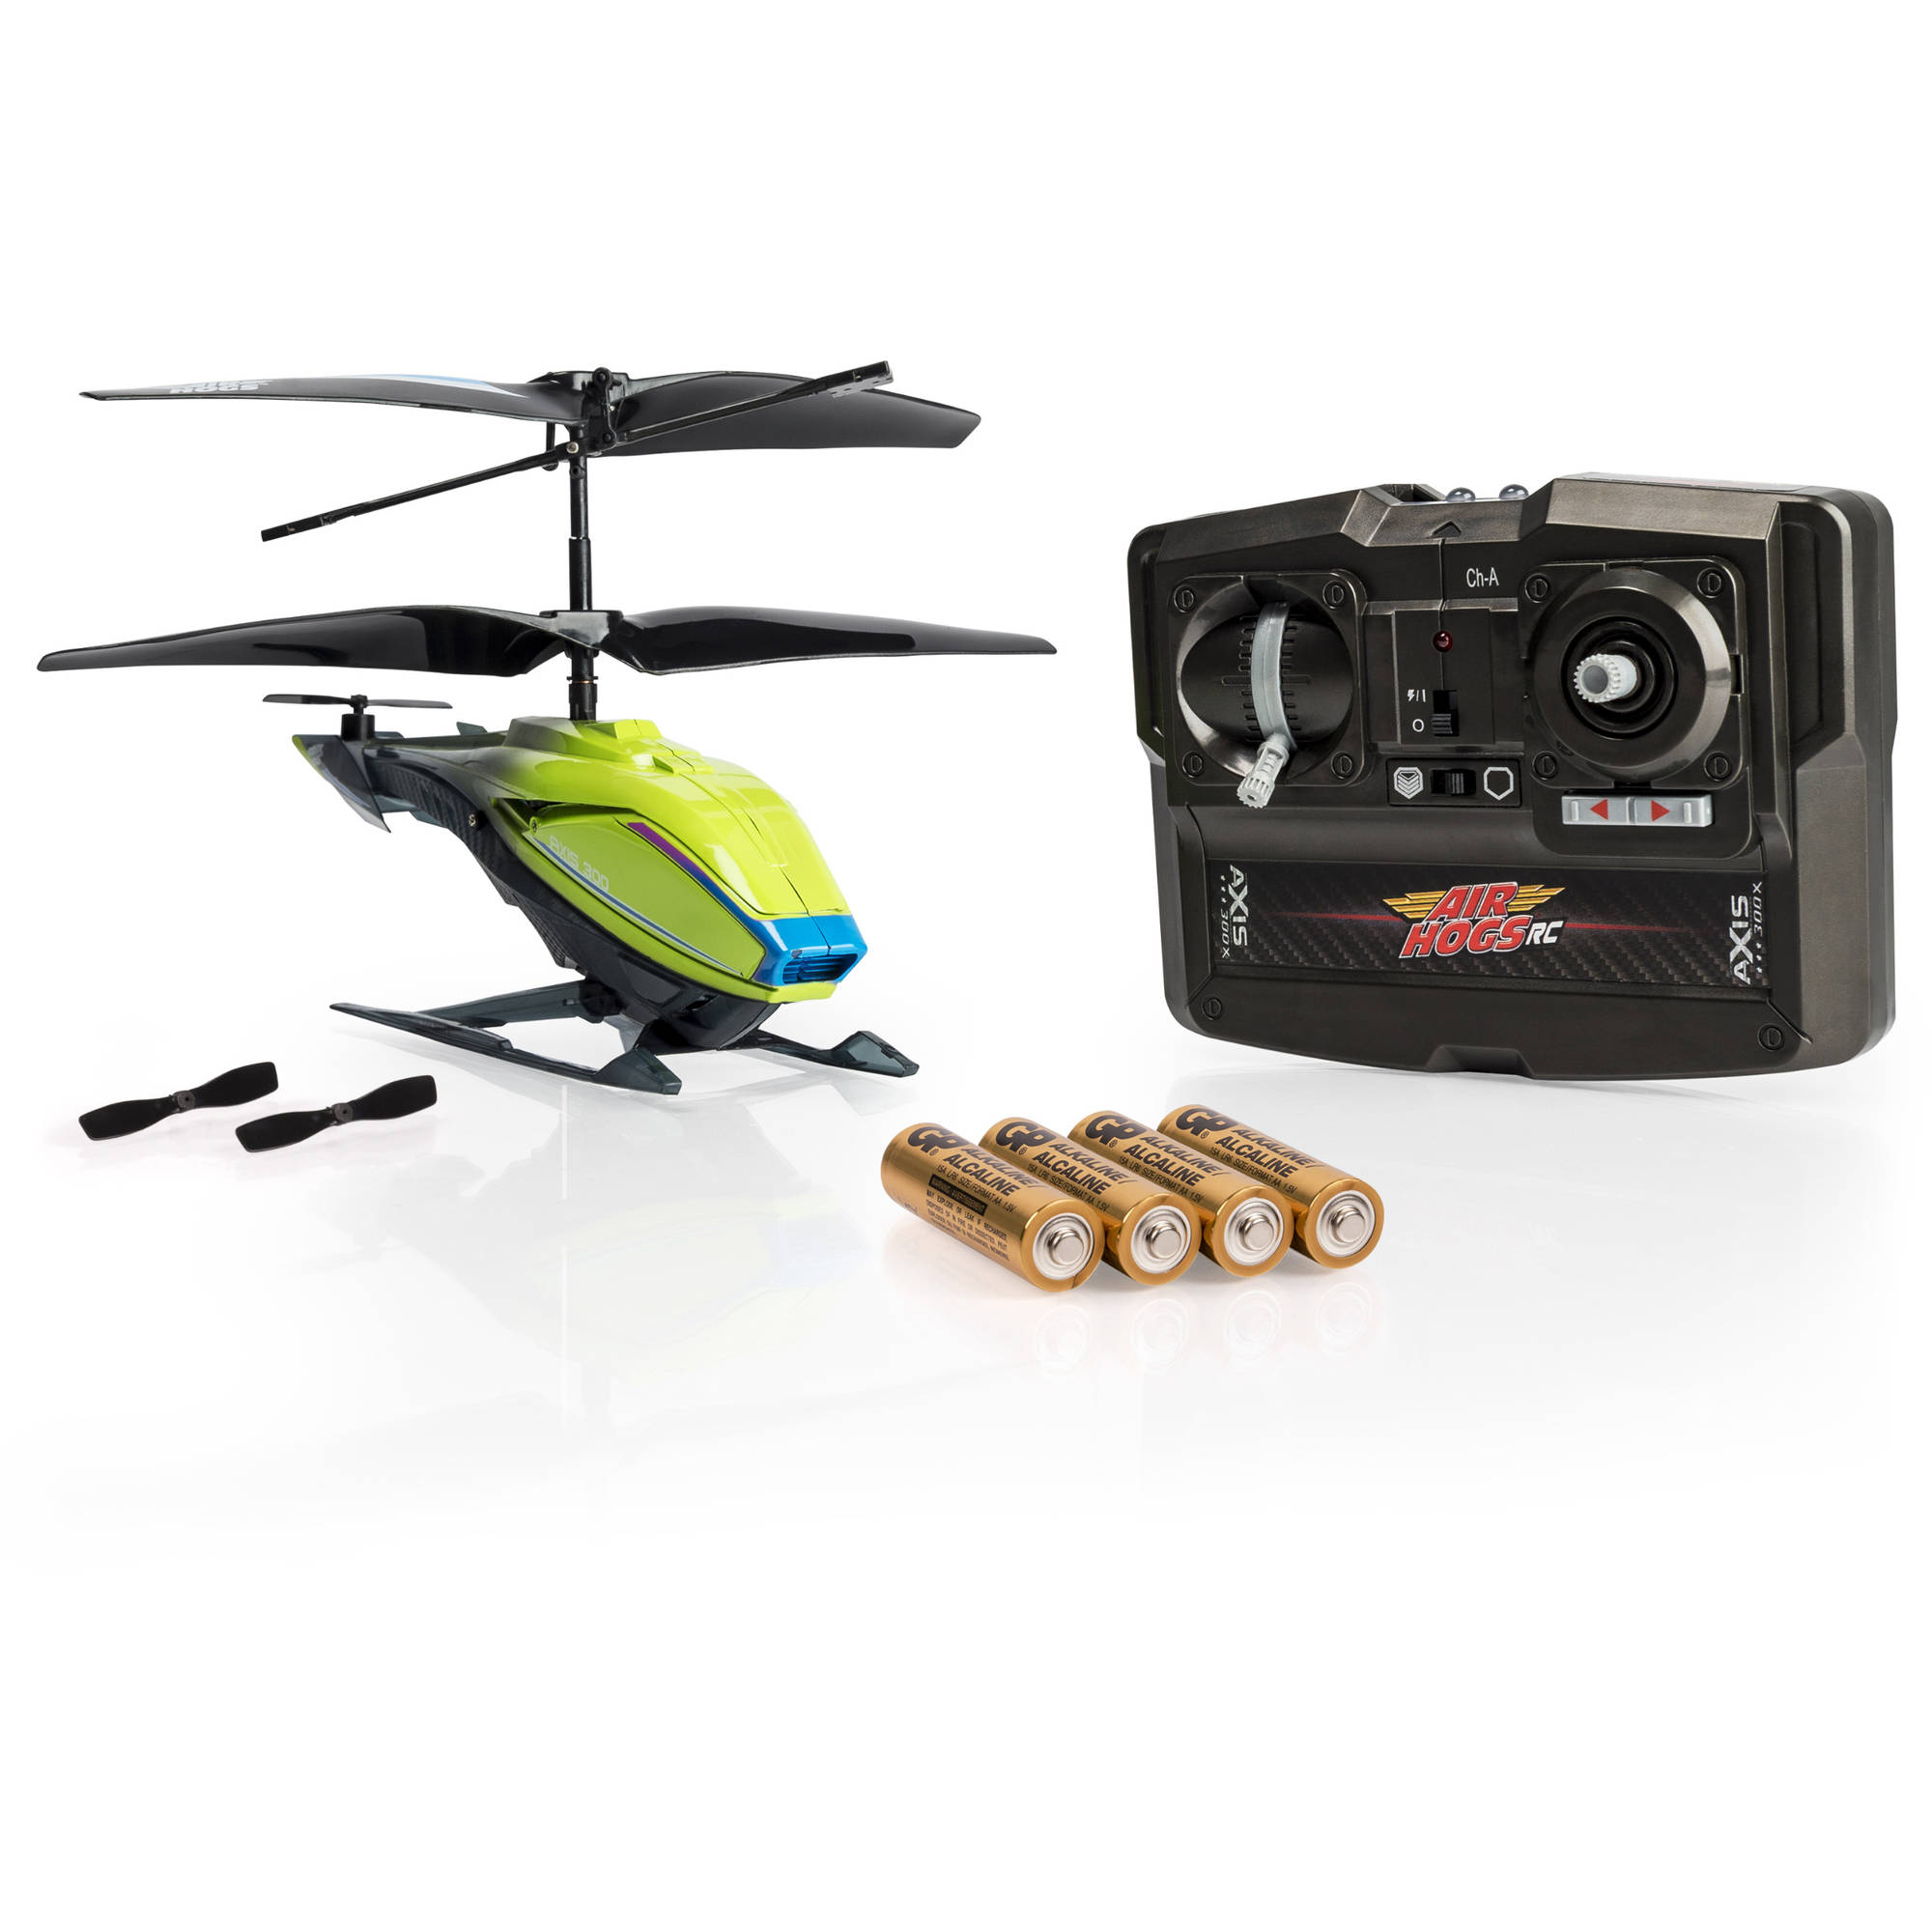 Air Hogs RC Axis 300X, Green R/C Helicopter with Batteries